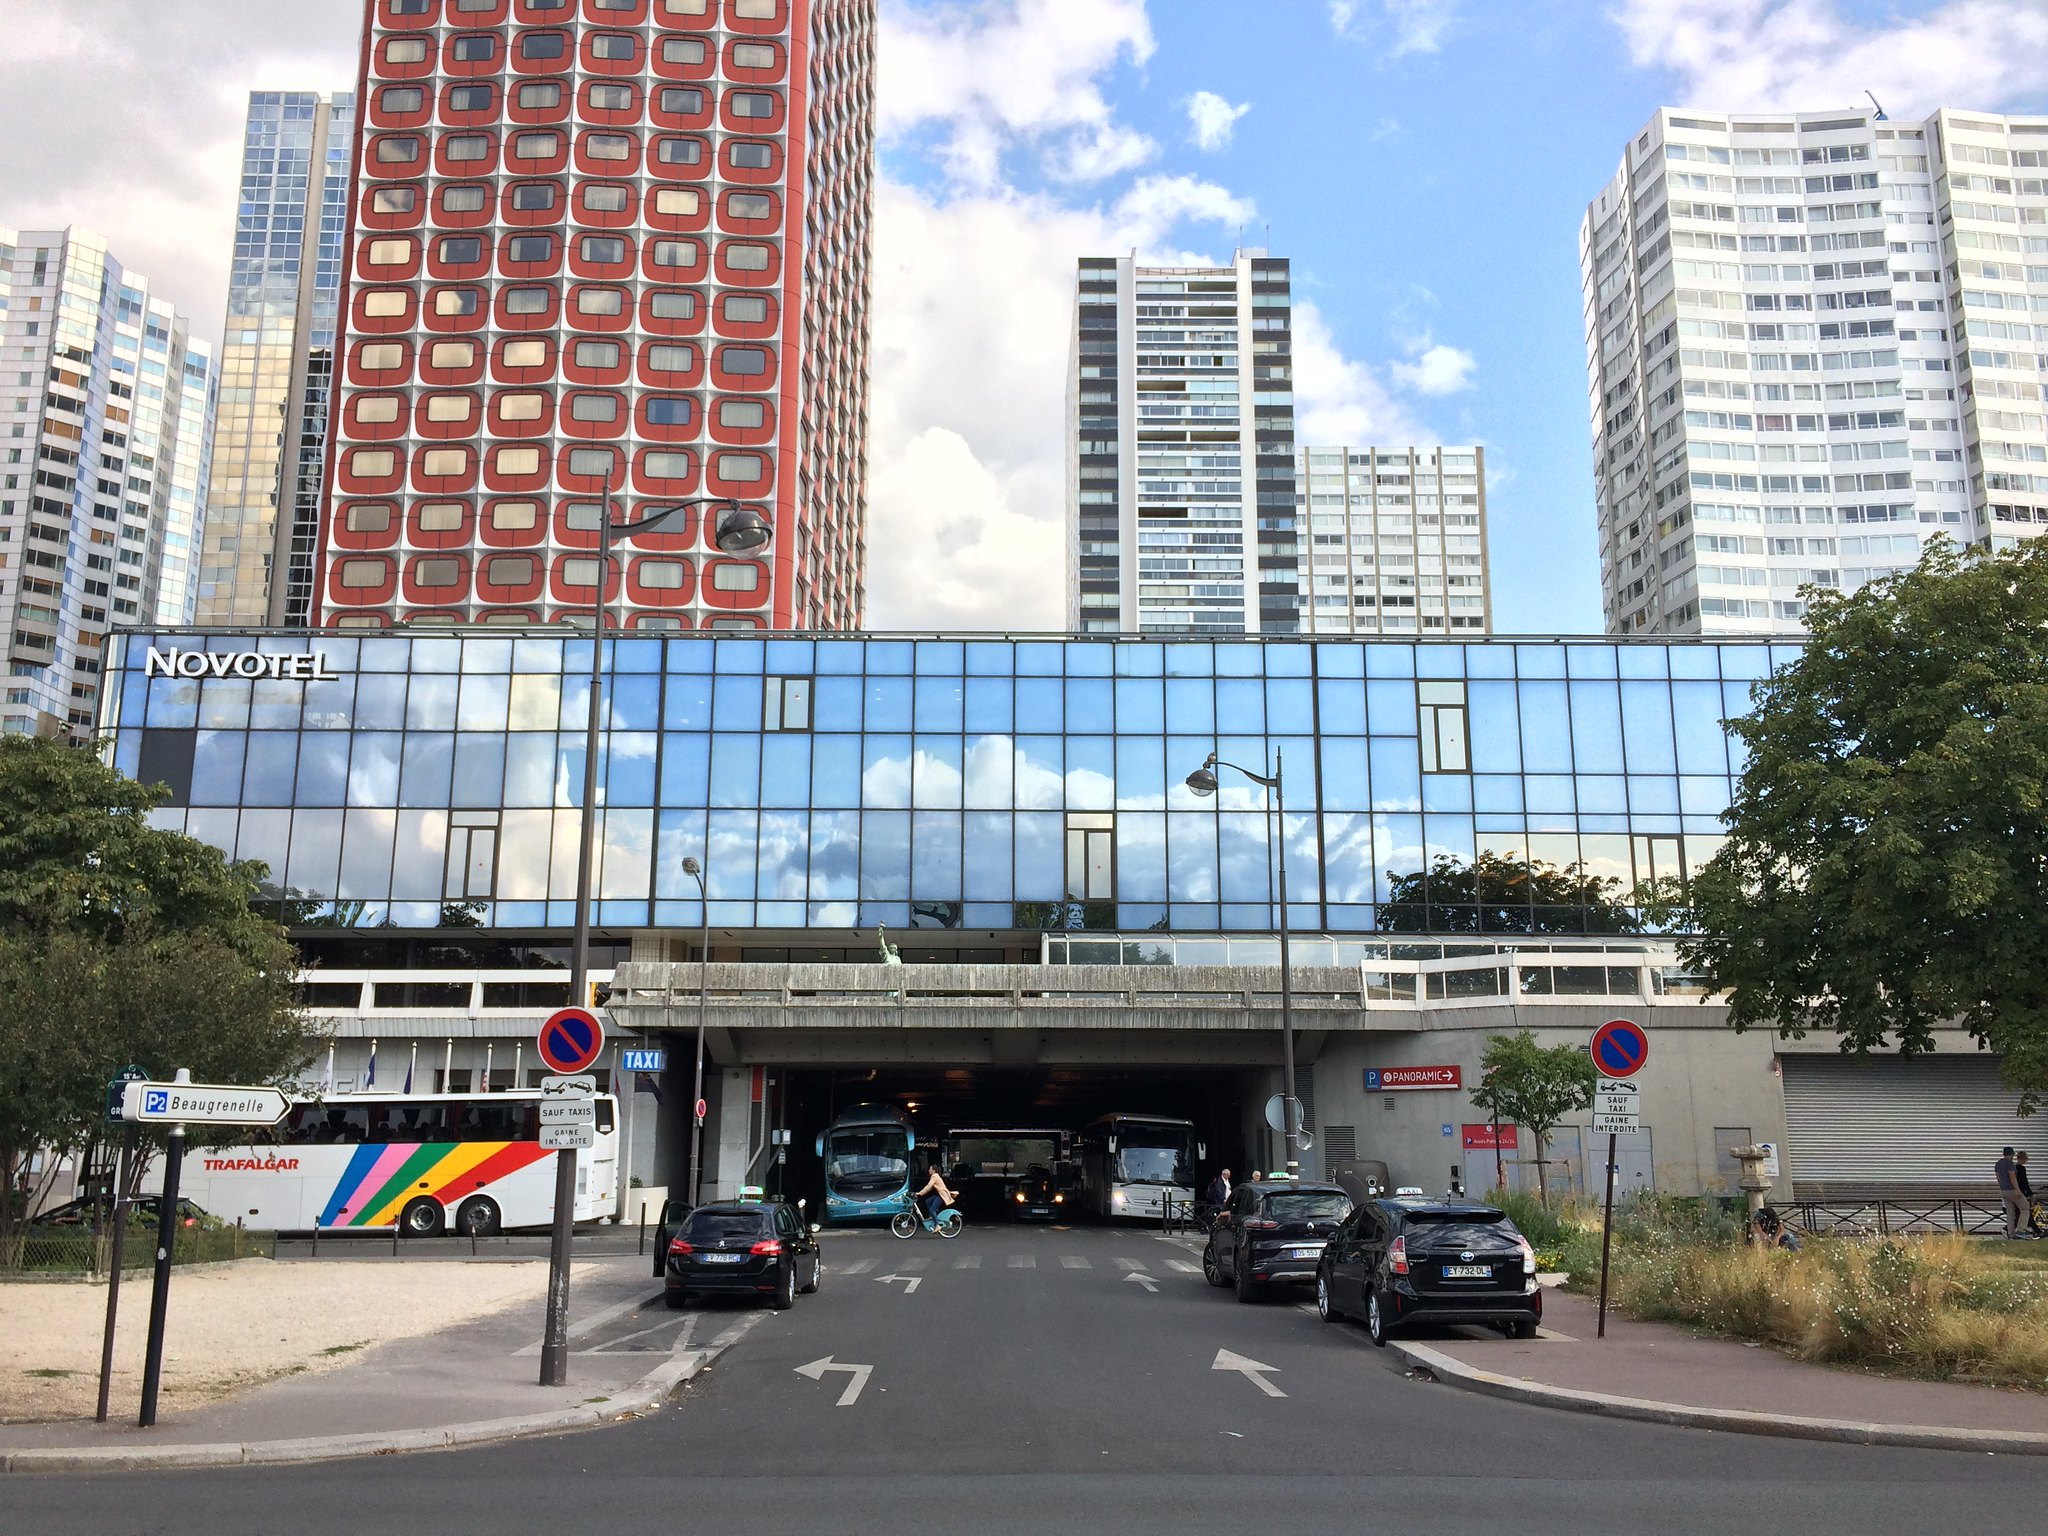 Front-de-Seine is a series of glass-and-steel towers meant to target the city's elite in the 1970s. Photo by Yonah Freemark.